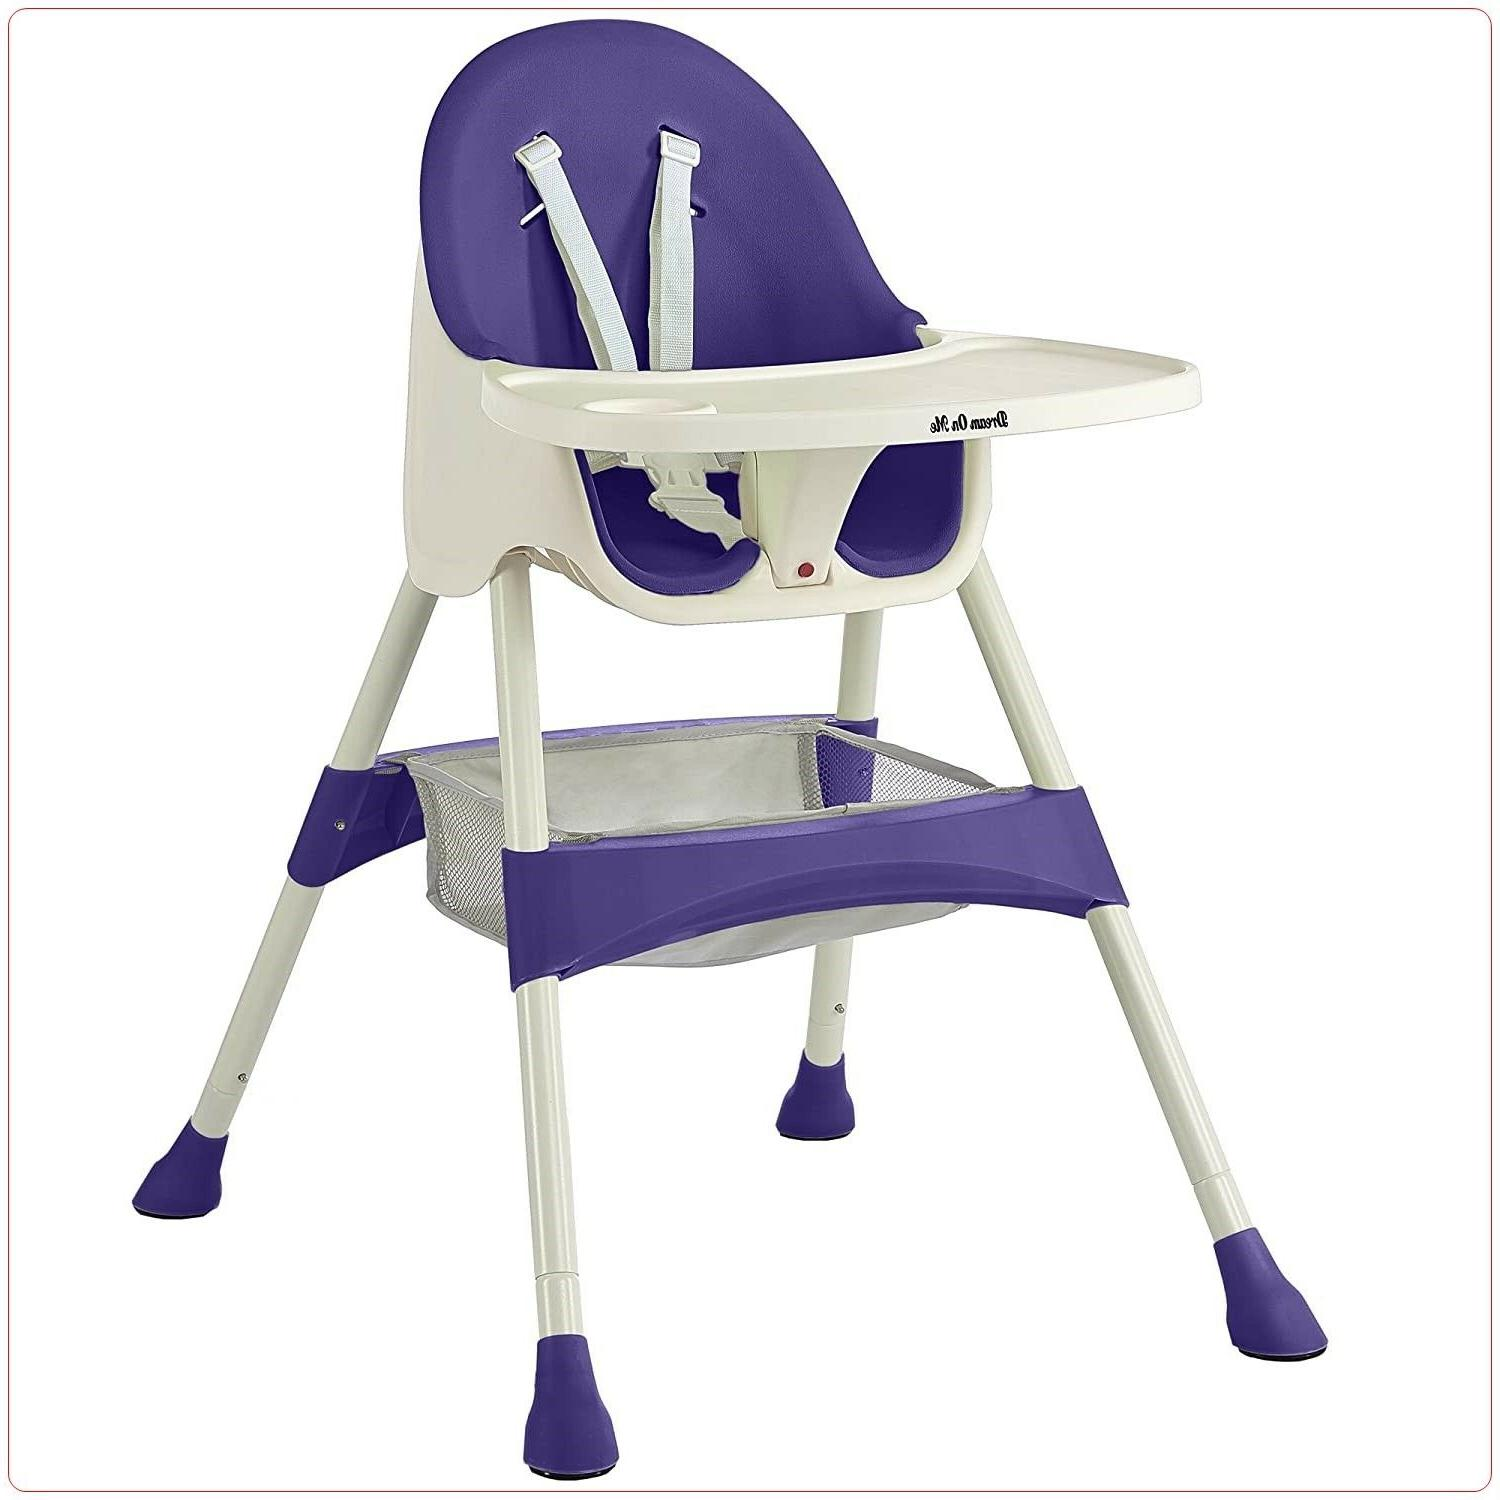 Baby Eating Chair Full Portable with